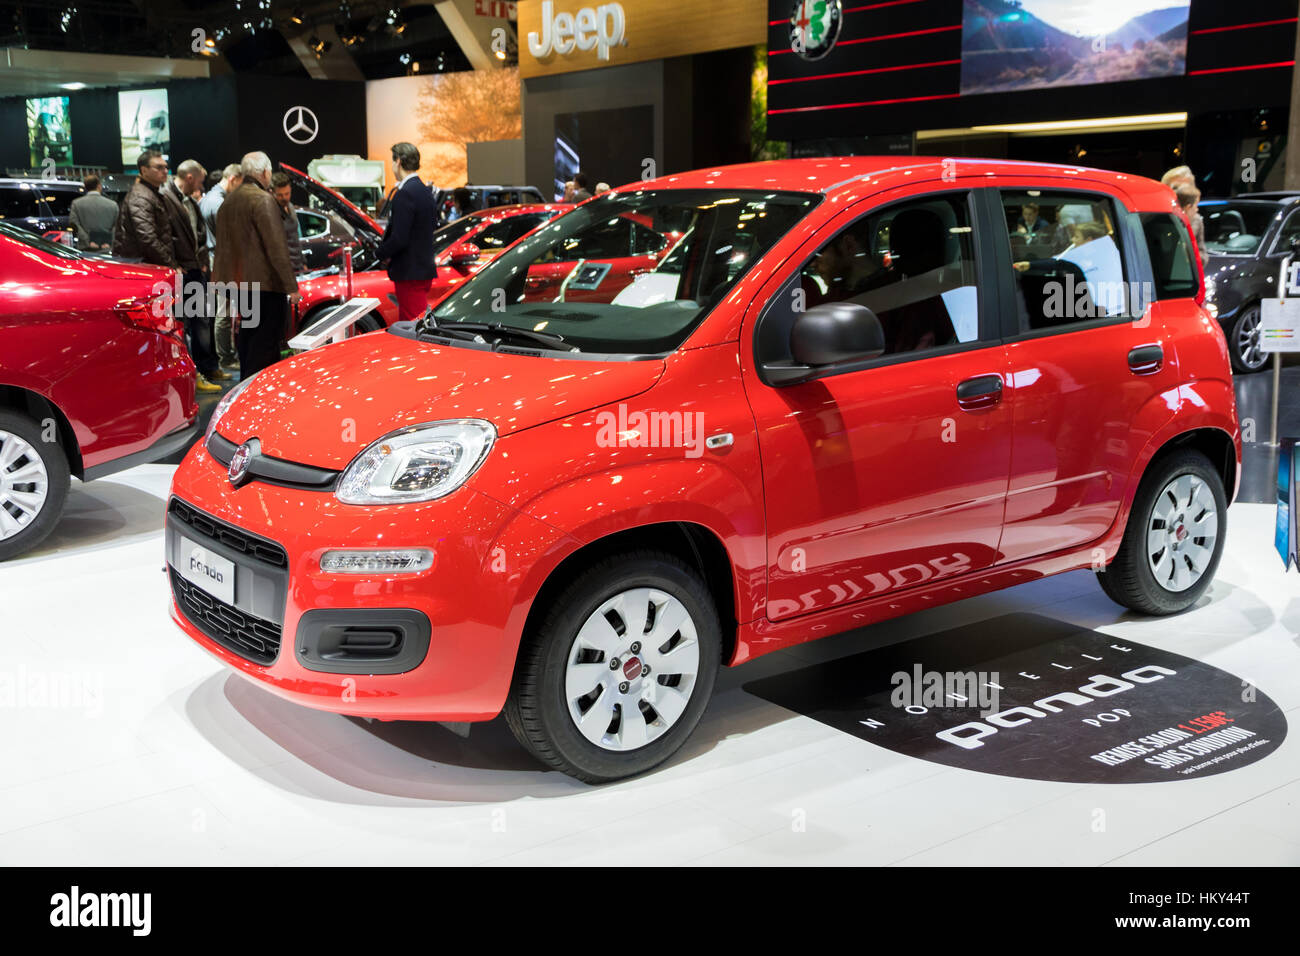 brussels jan 19 2017 new fiat panda pop on display at. Black Bedroom Furniture Sets. Home Design Ideas